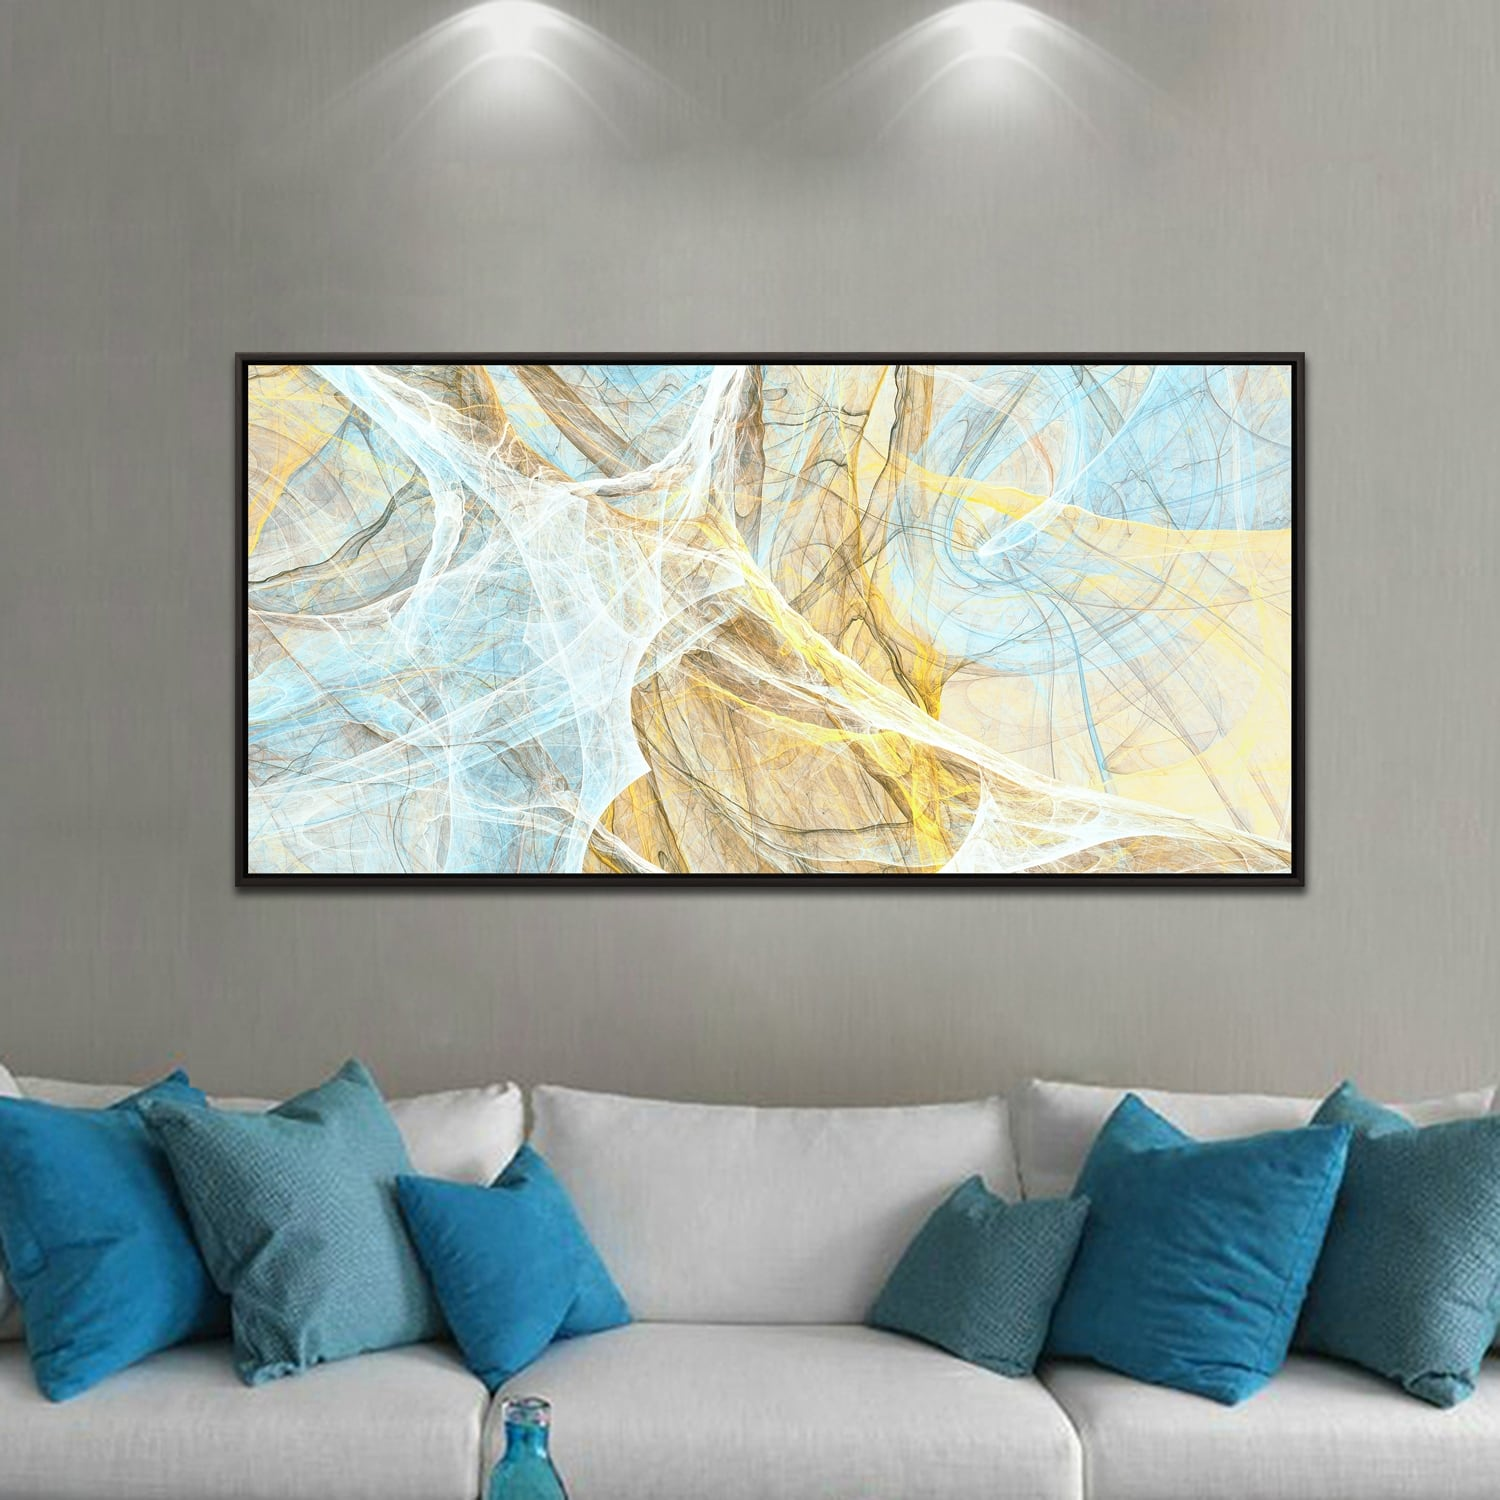 Antares abstract framed canvas for a design decoration